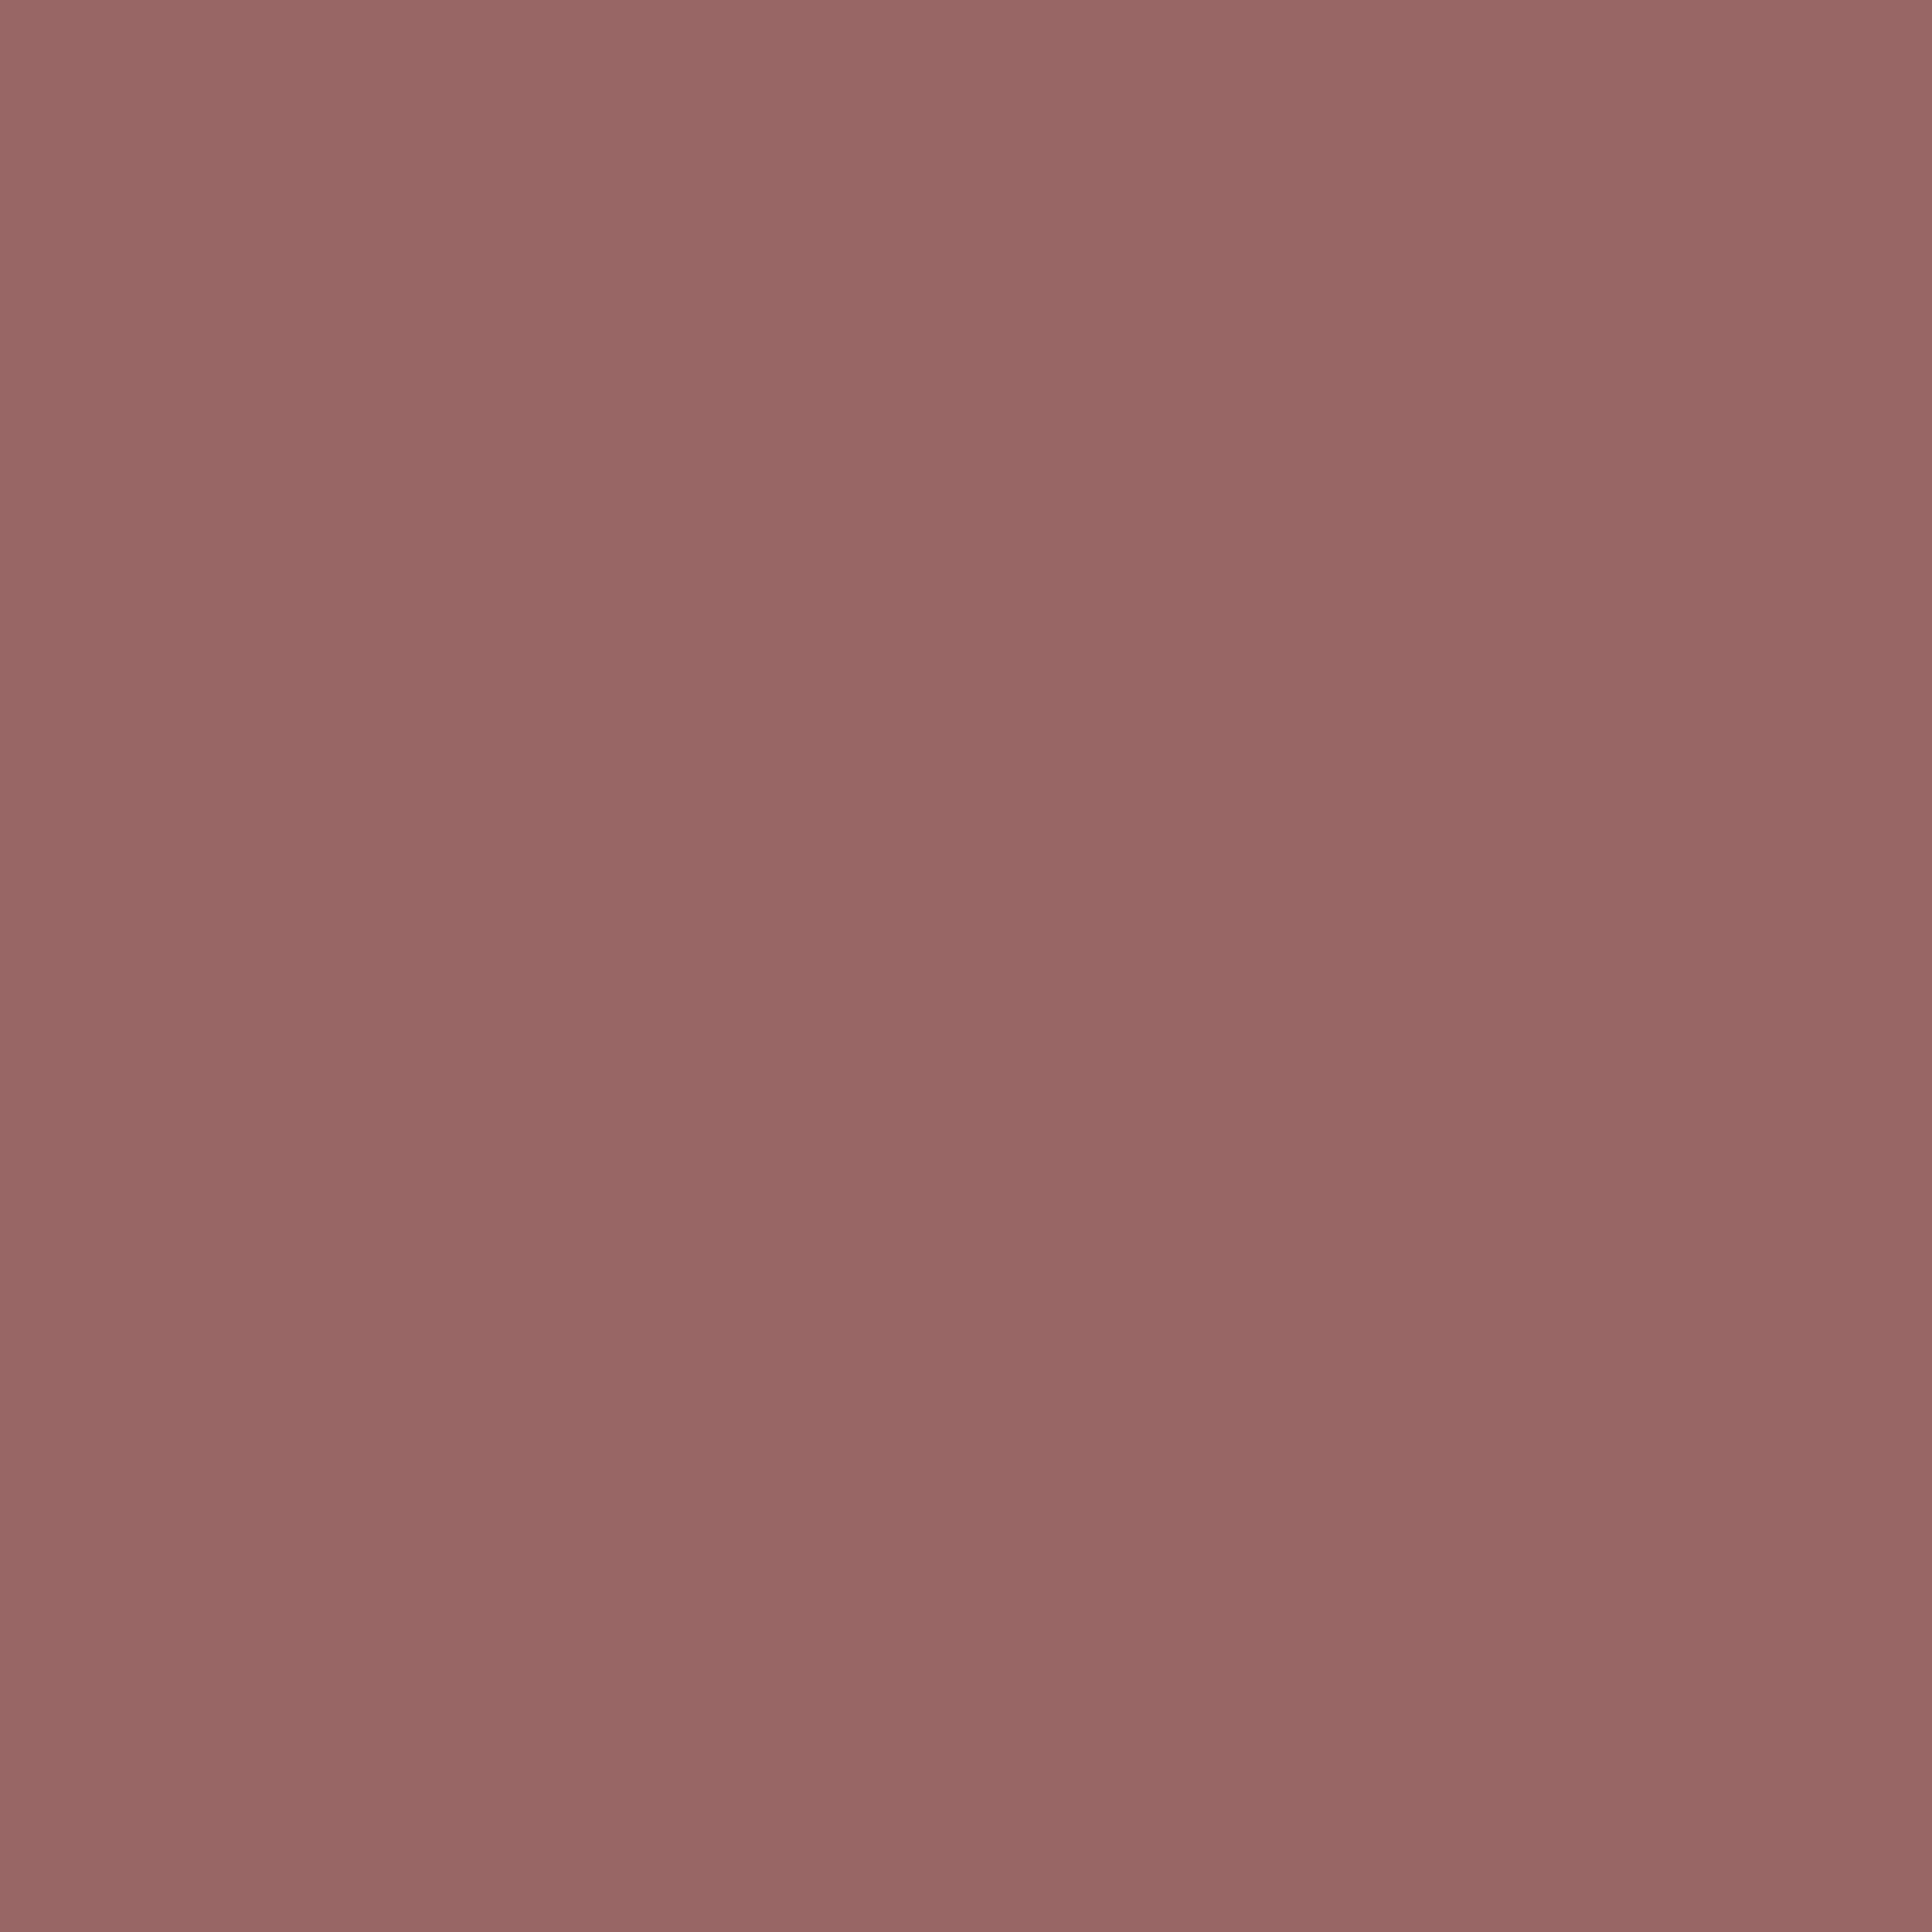 3600x3600 Copper Rose Solid Color Background